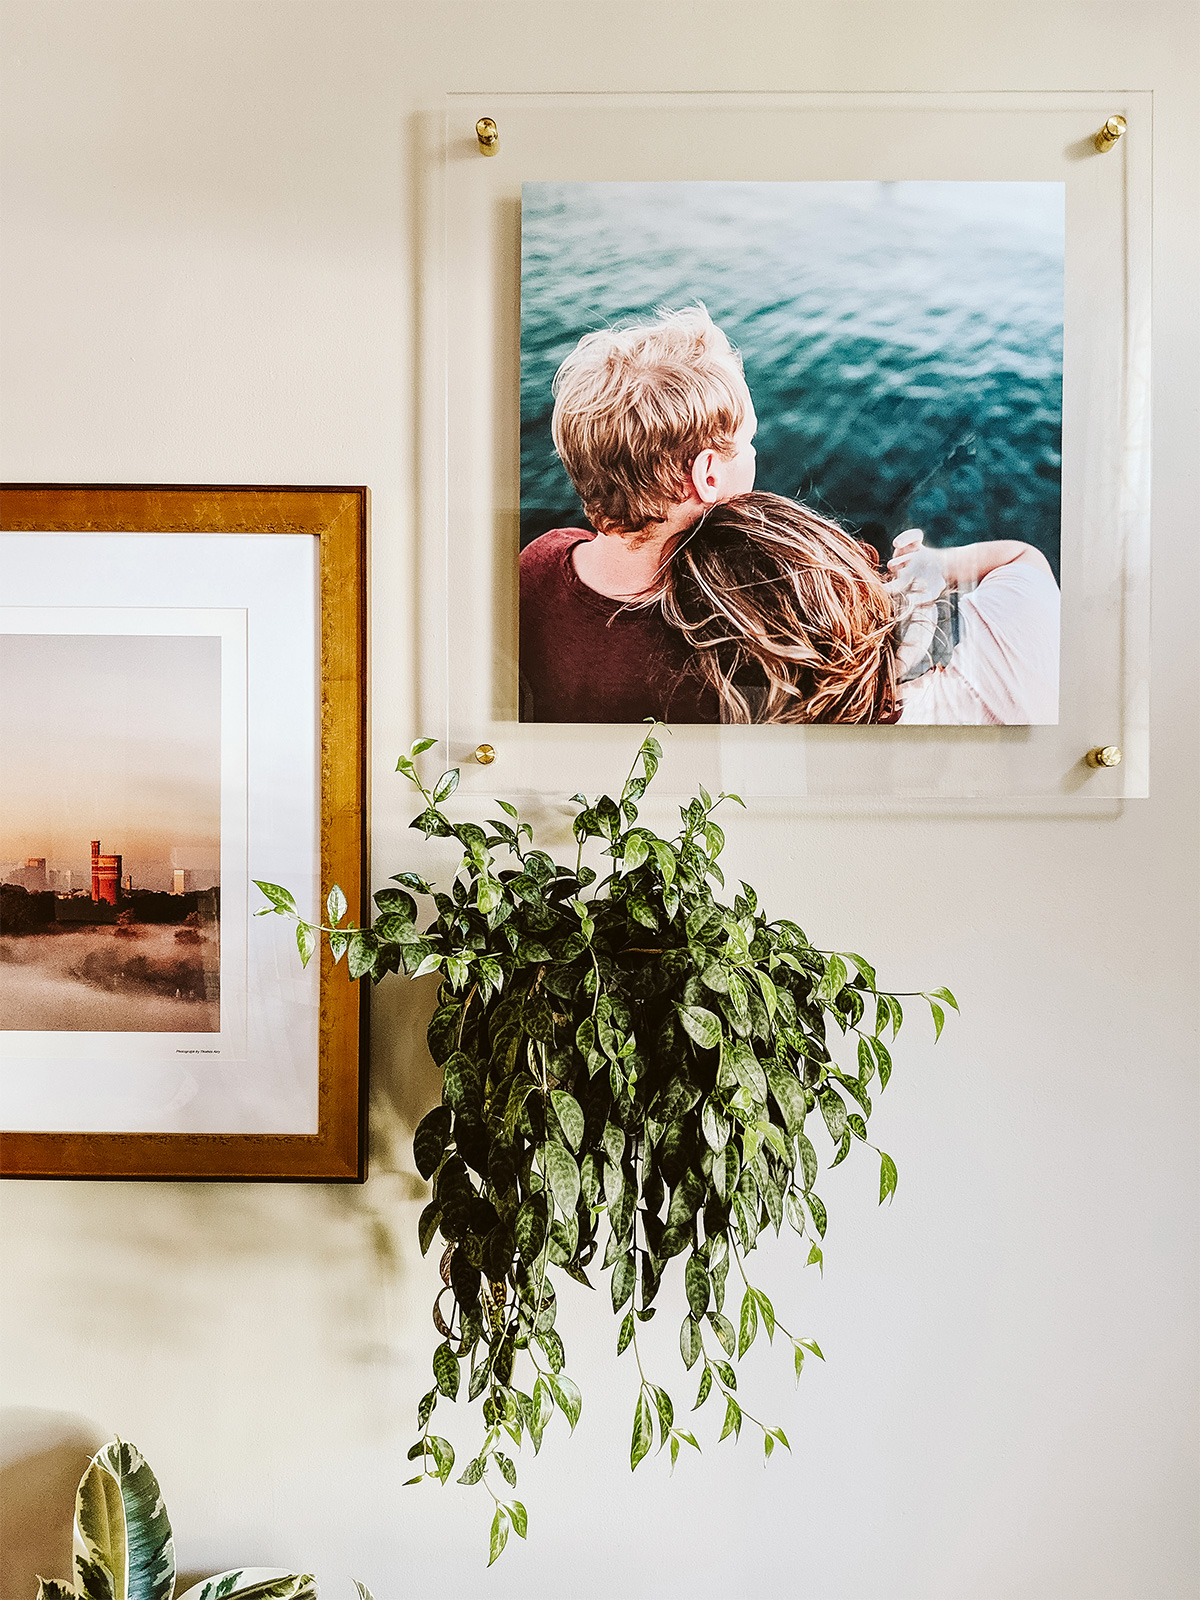 Small art wall created with staggered photo frames and wall-mounted plant